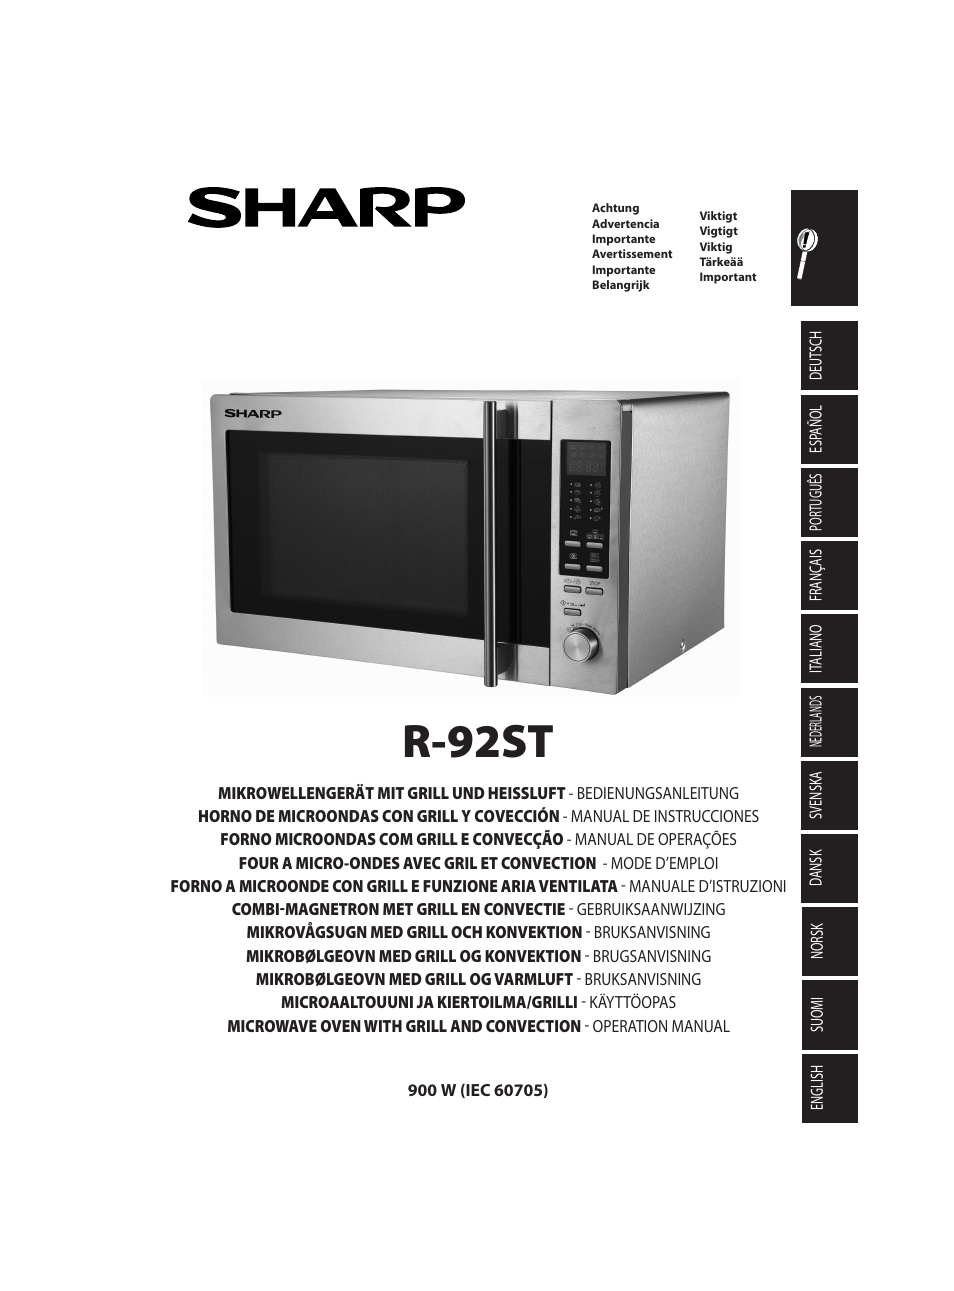 sharp r 92stw four micro ondes combin user manual 290. Black Bedroom Furniture Sets. Home Design Ideas